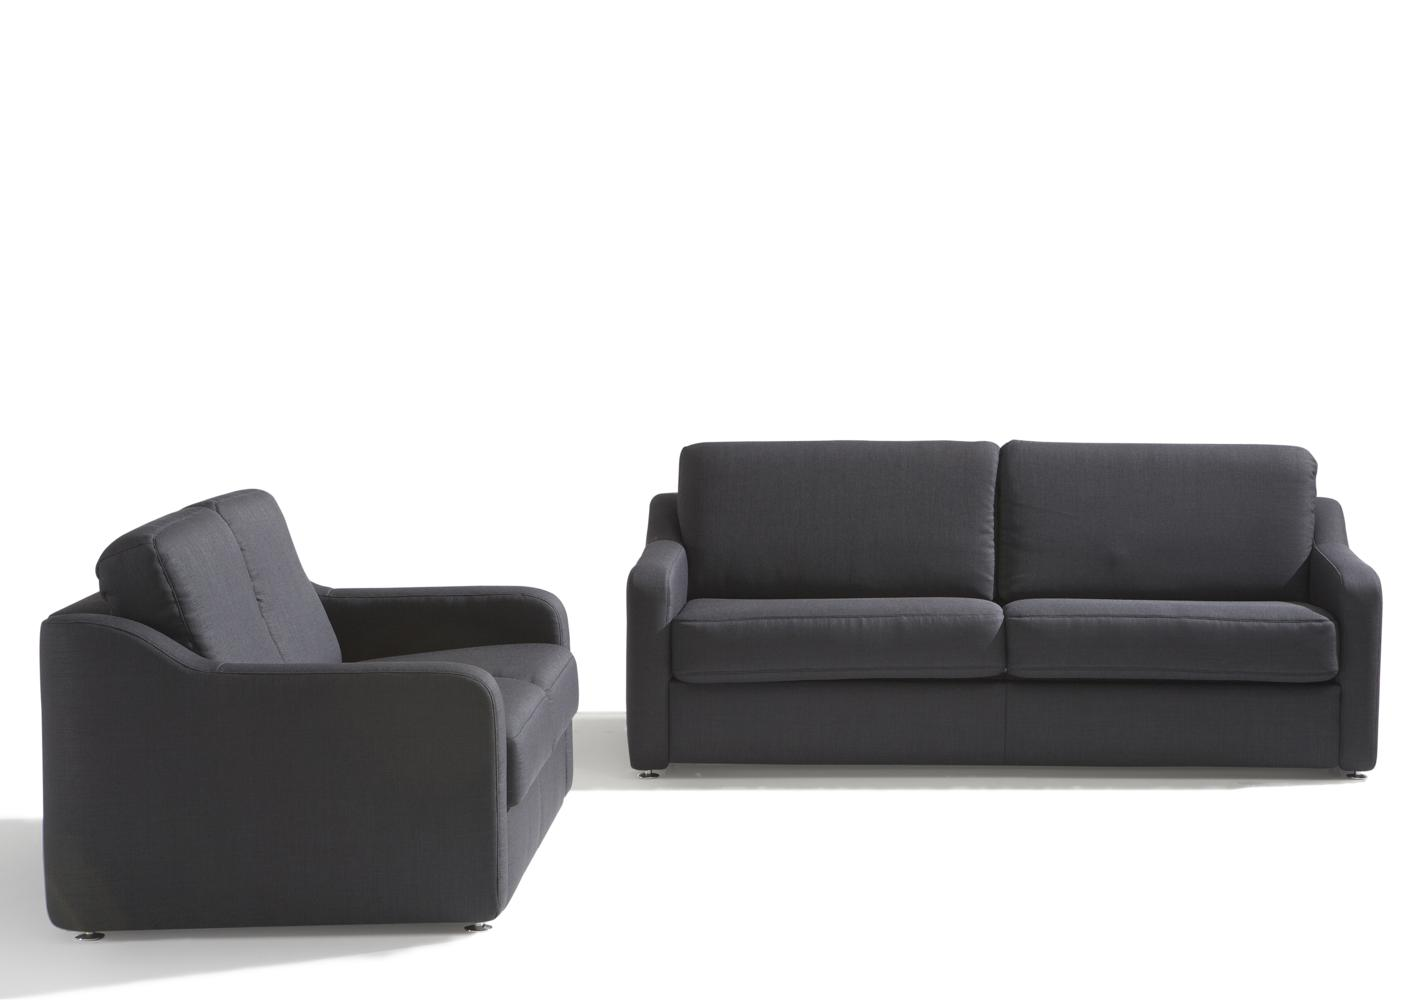 Canap convertible ikea solsta univers canap for Canape cuir ikea convertible